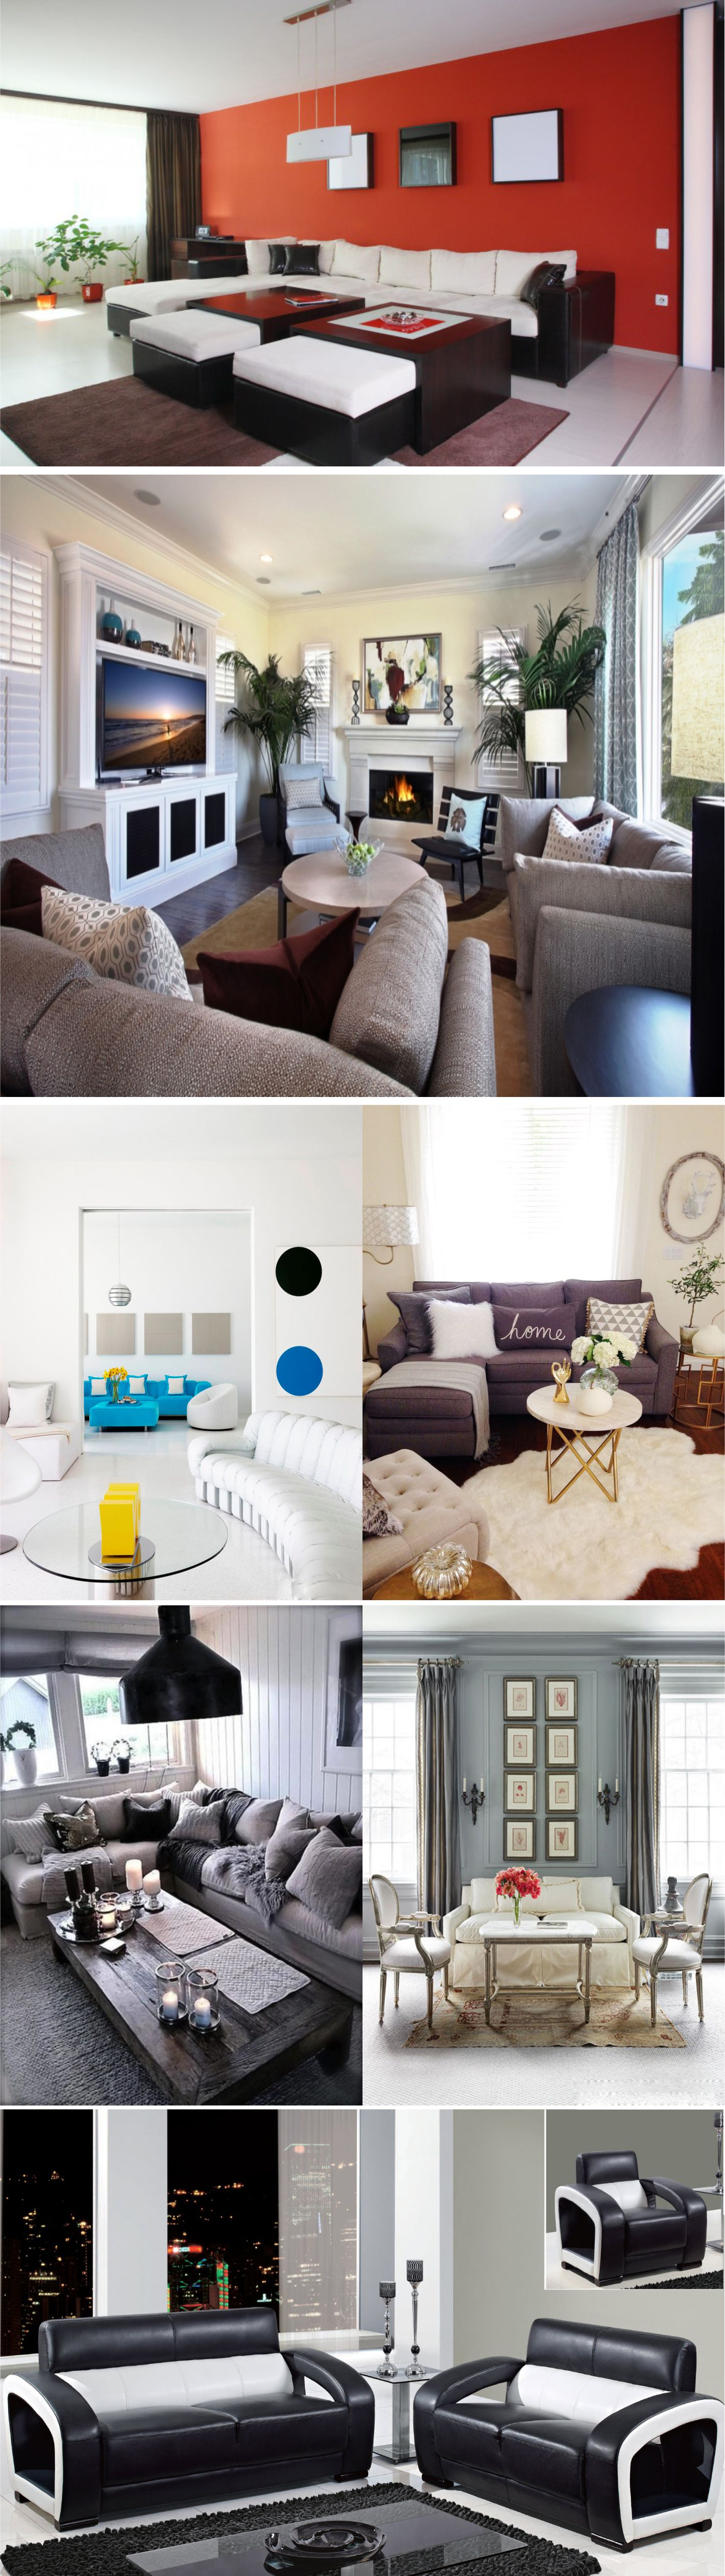 All New Beautiful living room decor ideas